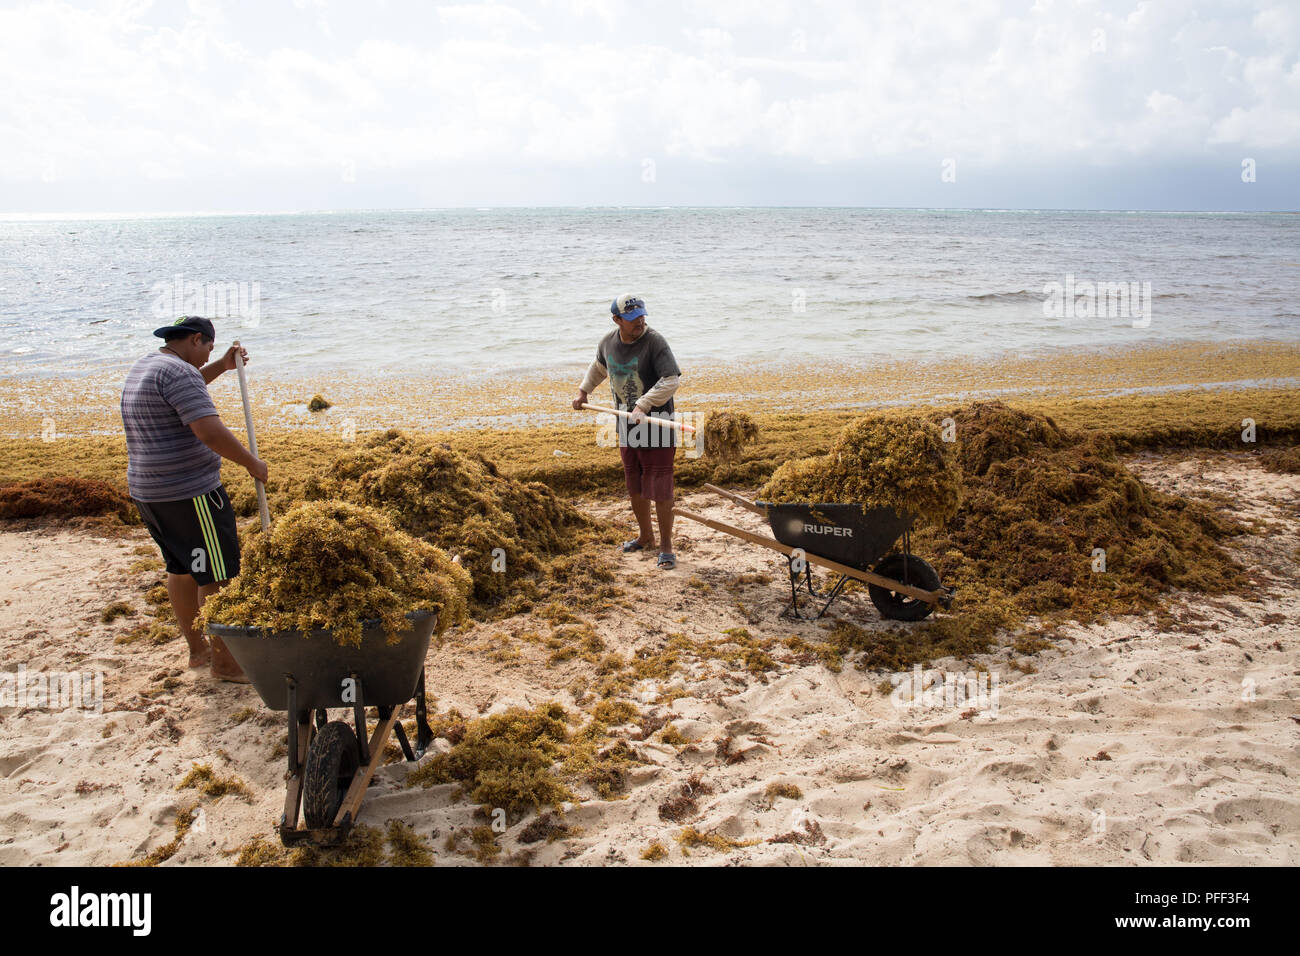 Workers remove Sargassum seaweed at Soliman Bay Beach, Tulum